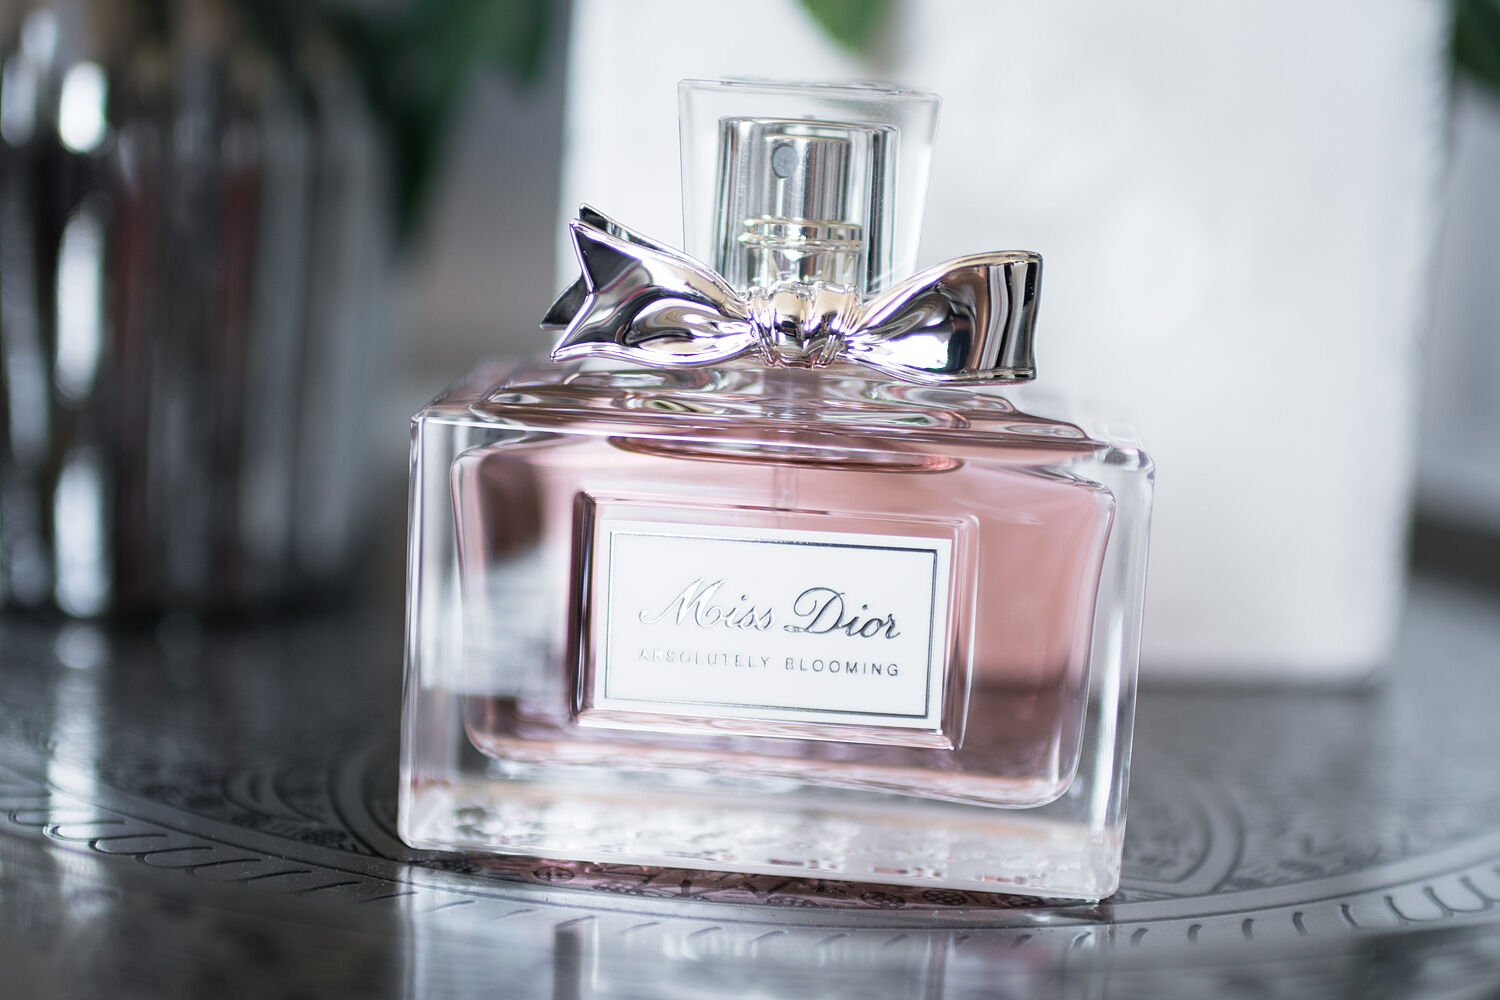 miss dior absolutely blooming